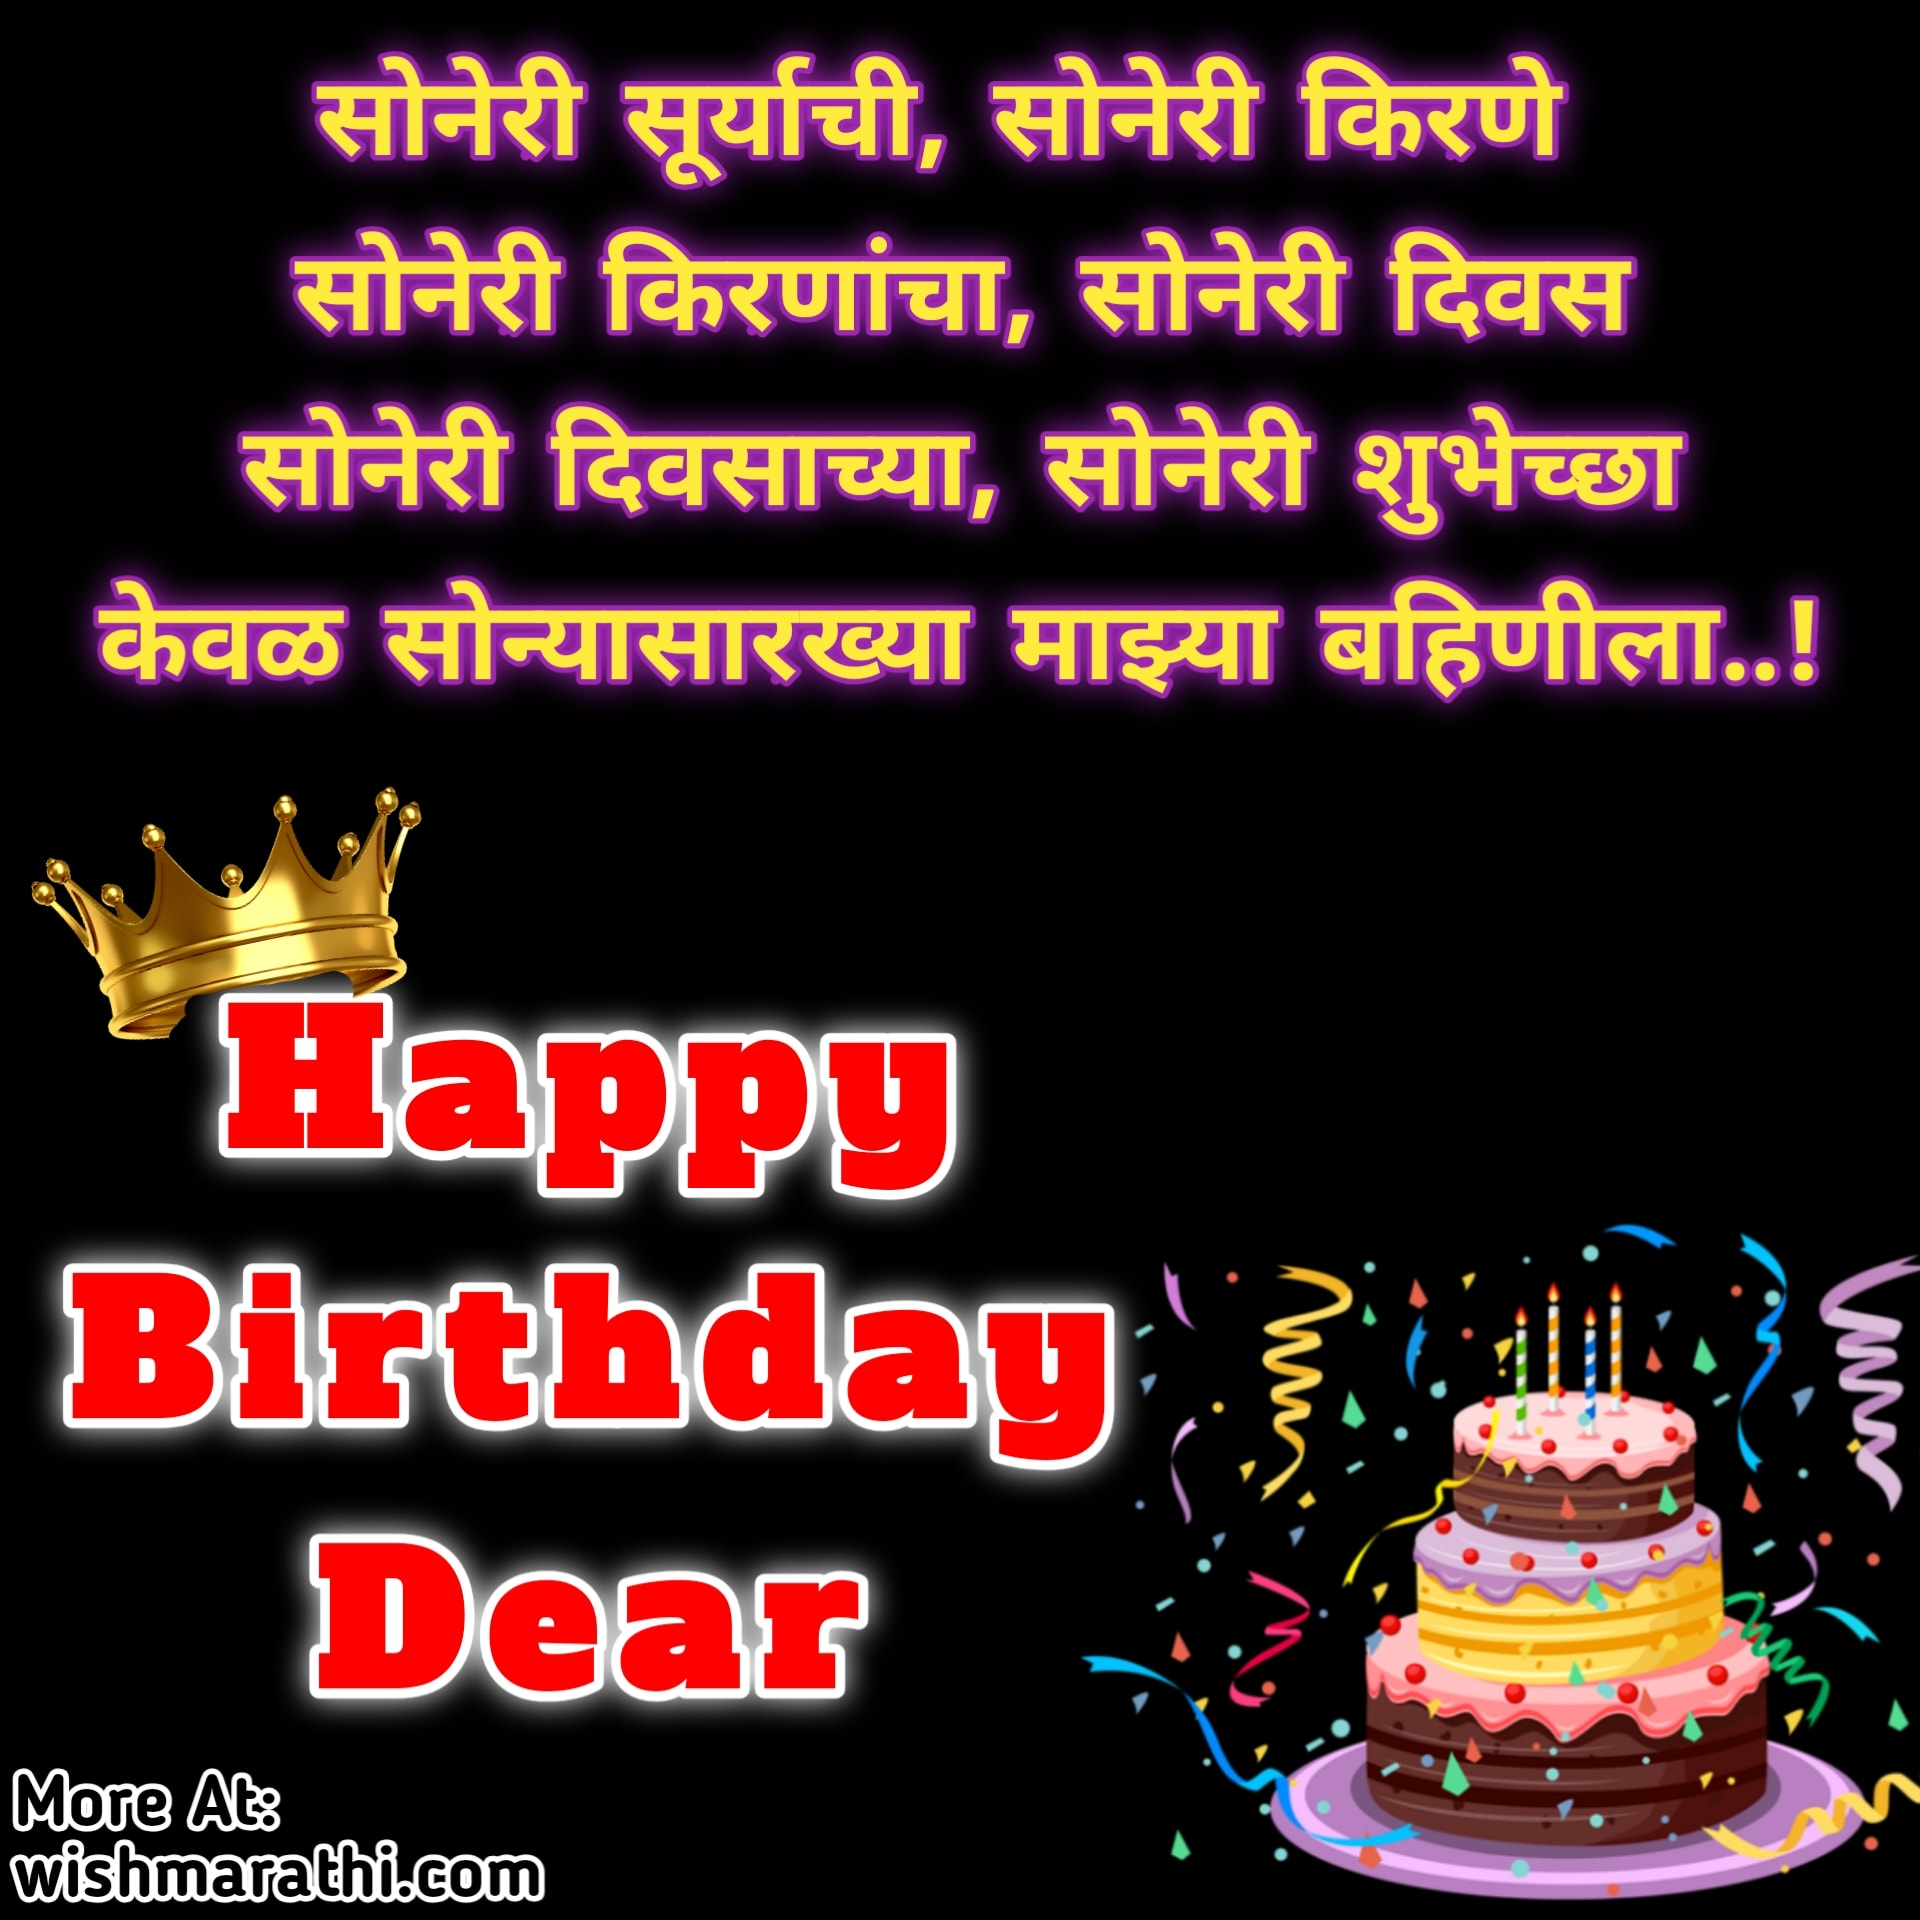 bday wish for sister in marathi